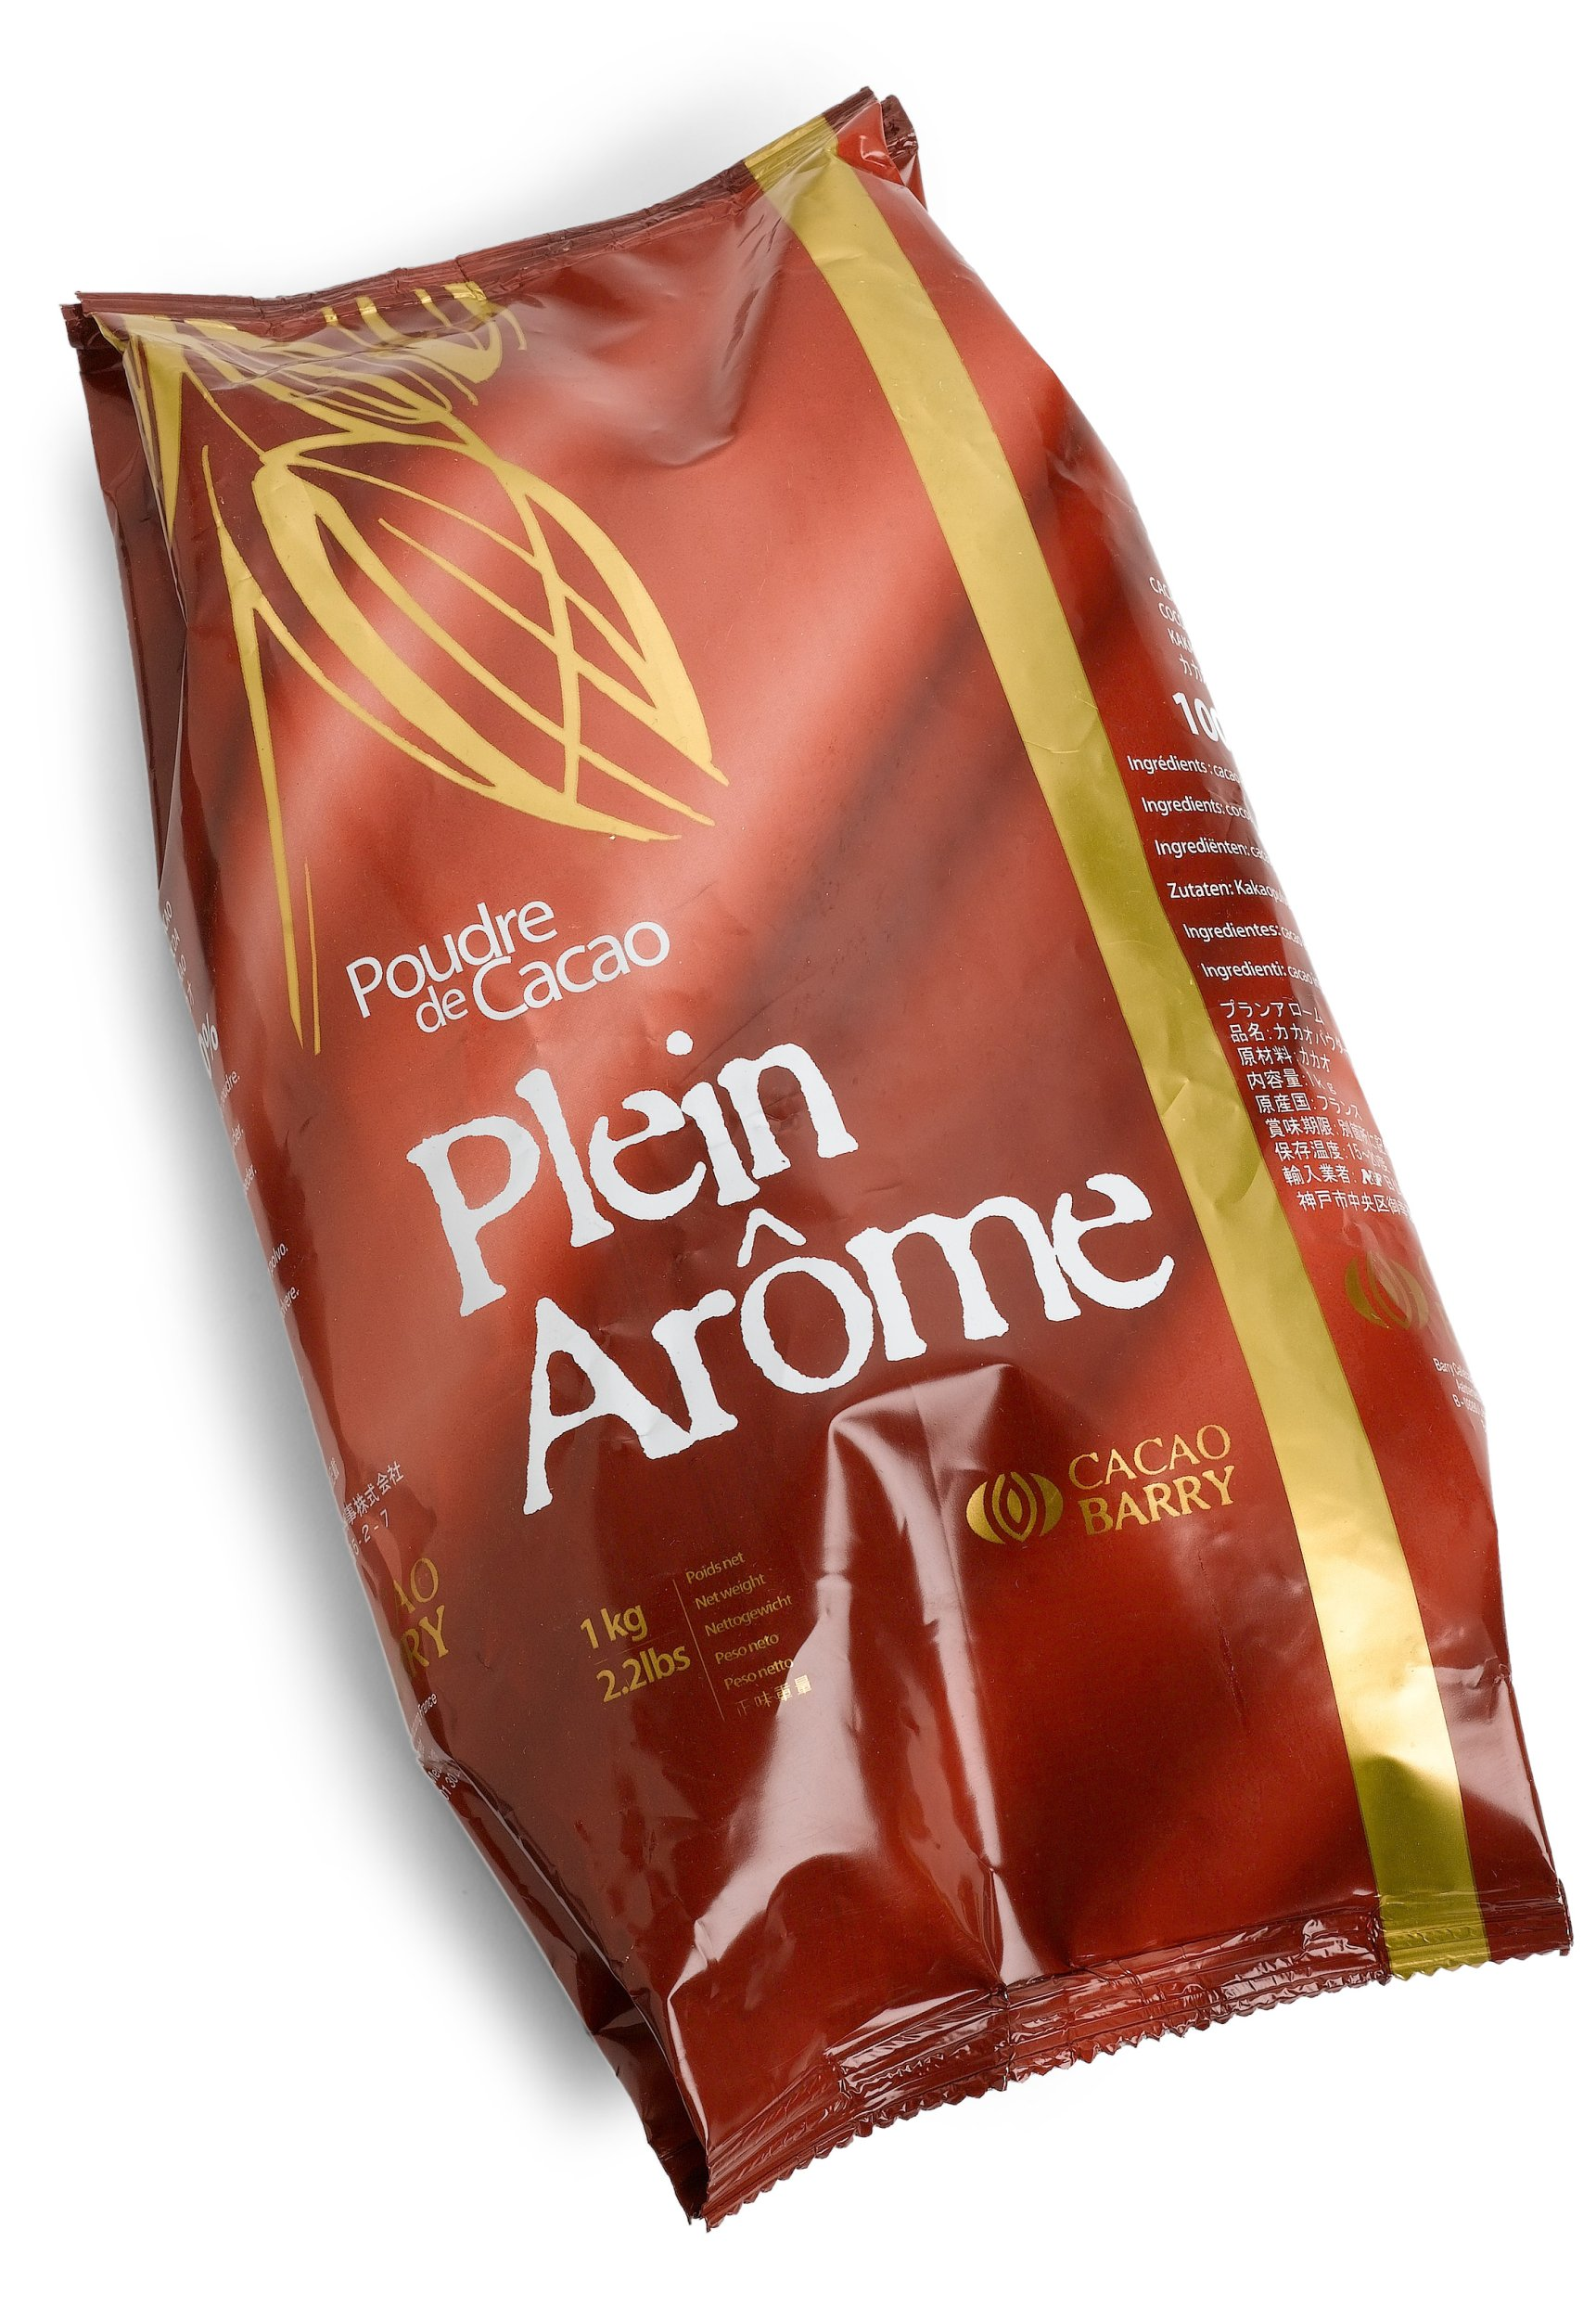 Poudre de Cacao Plein Arome Cocoa Barry (Cocoa Powder), 2.2-Pound Package